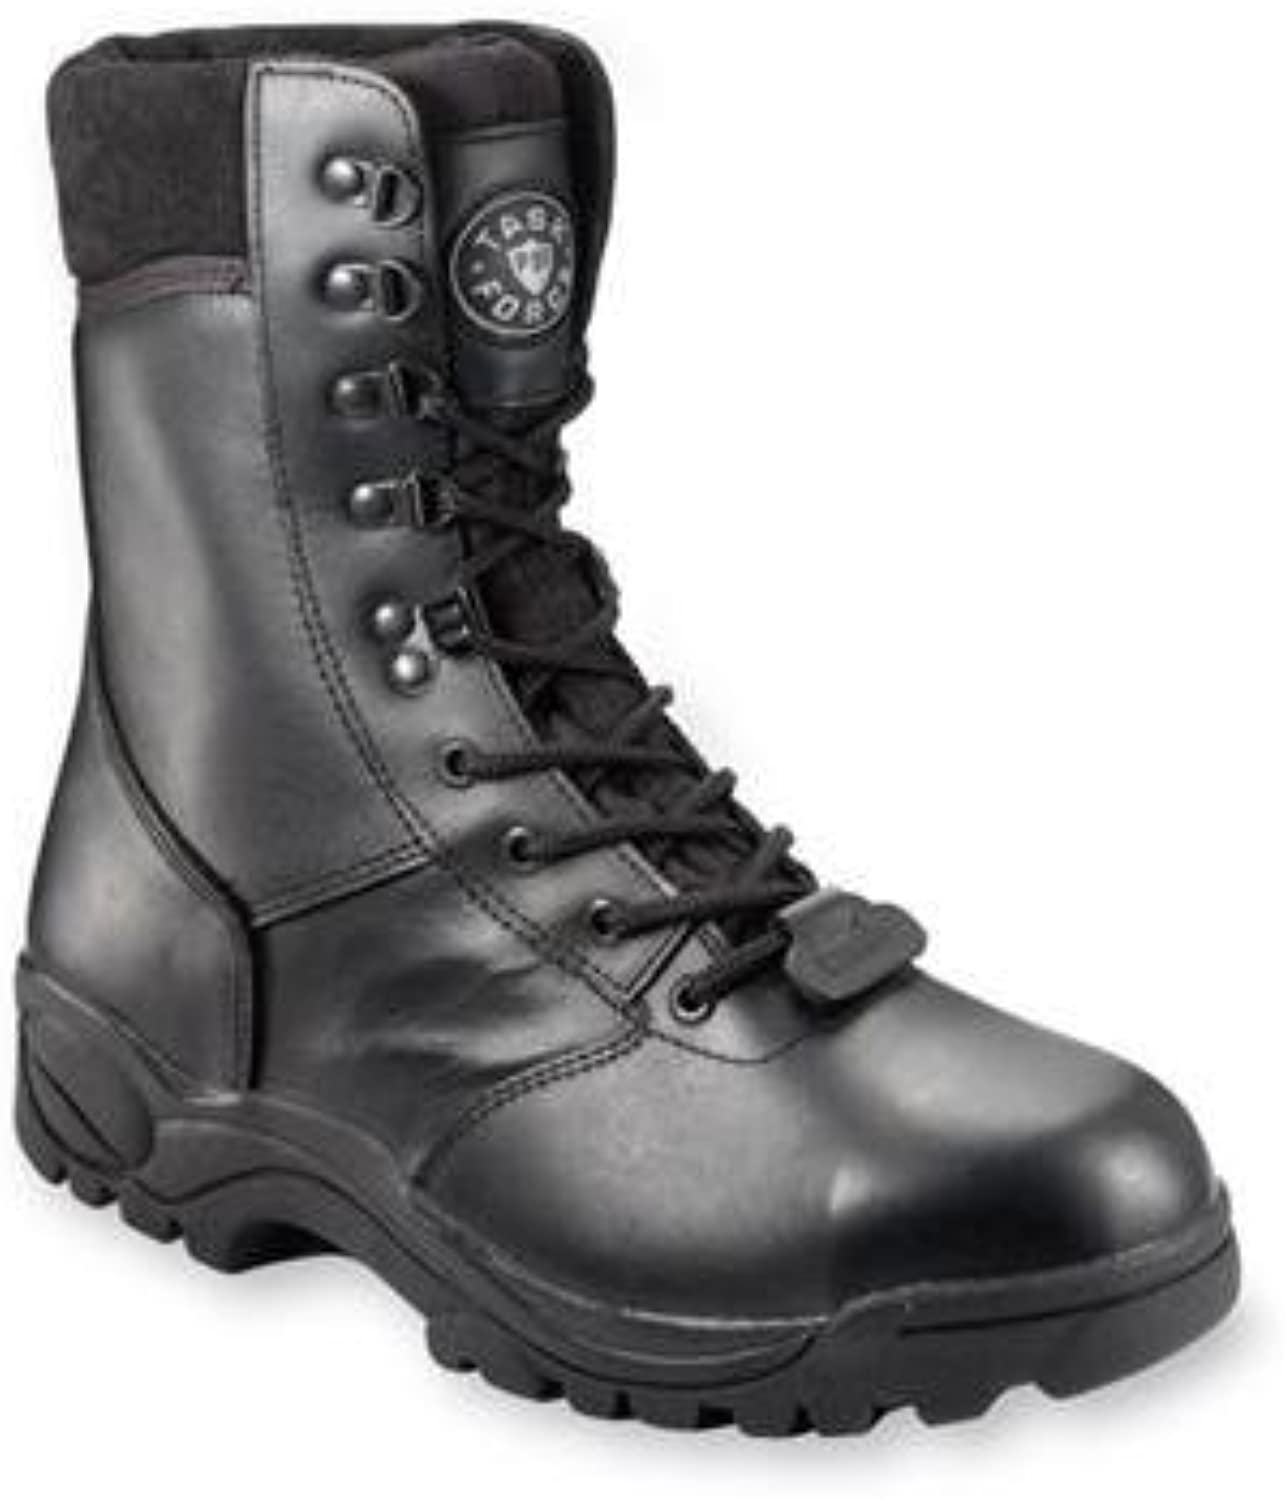 Task Force Black High Leg Safety Boots - Size 9